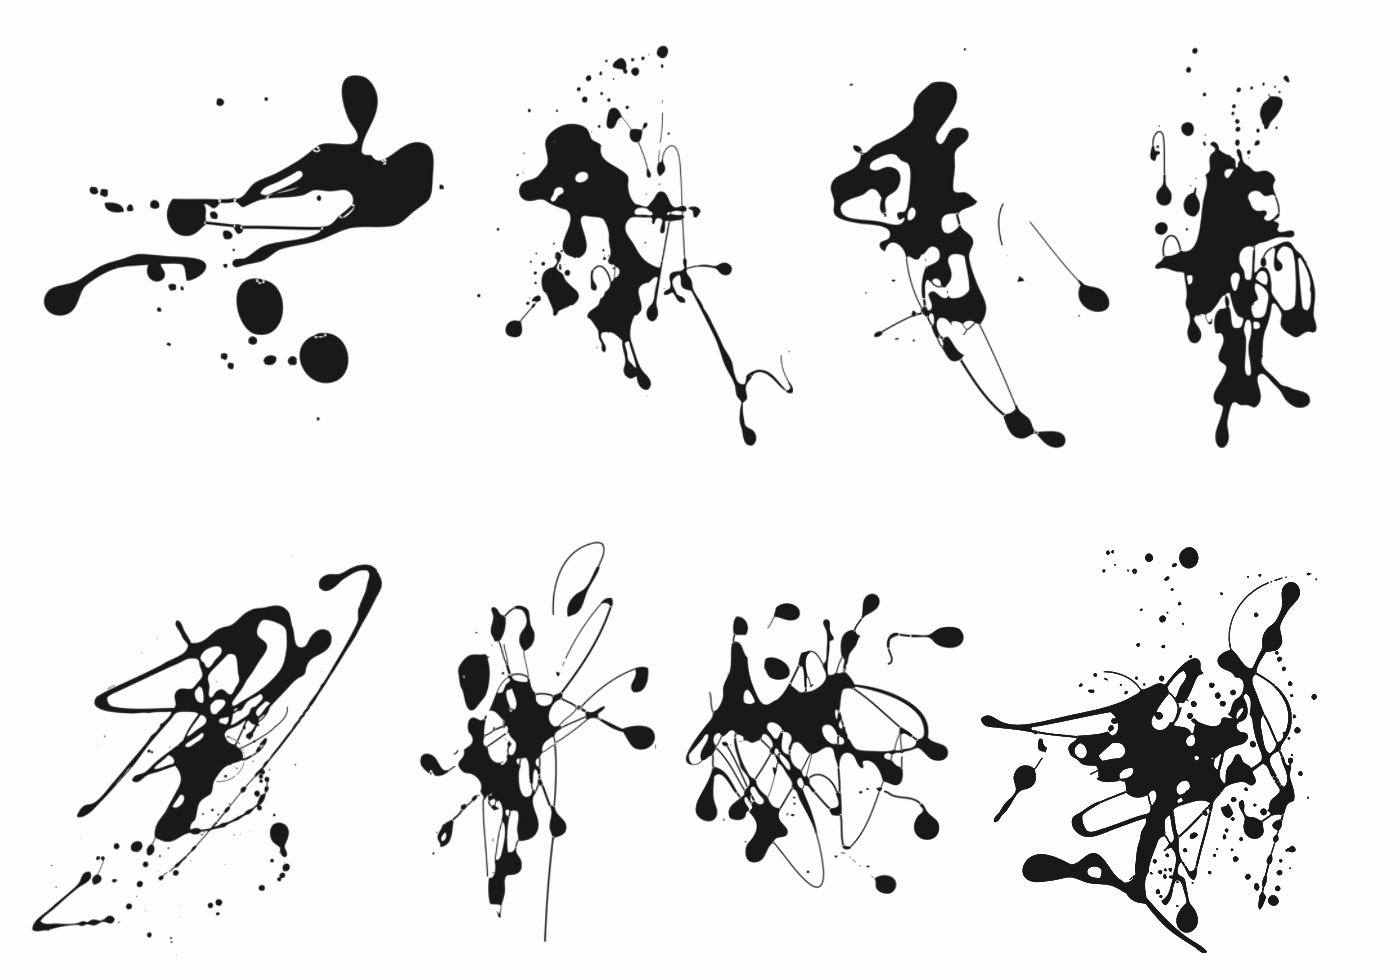 Paint Splatter Brush Photoshop Elegant Ink Splatter Brushes Pack Free Shop Brushes at